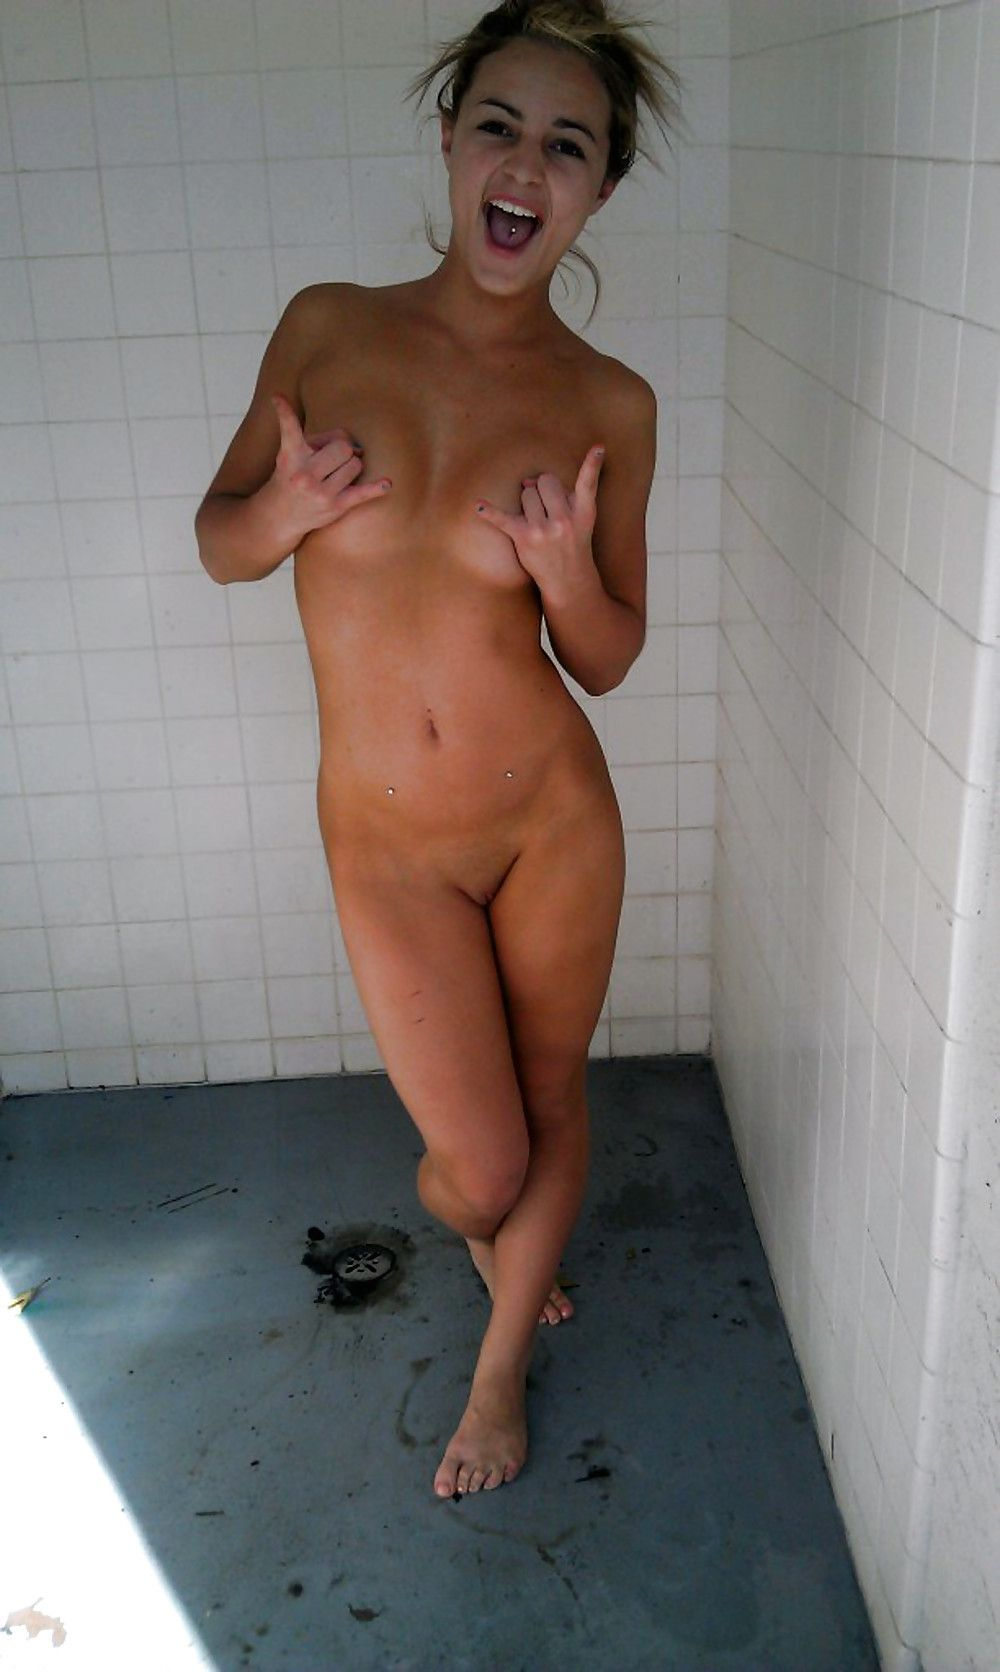 caught in the shower nude